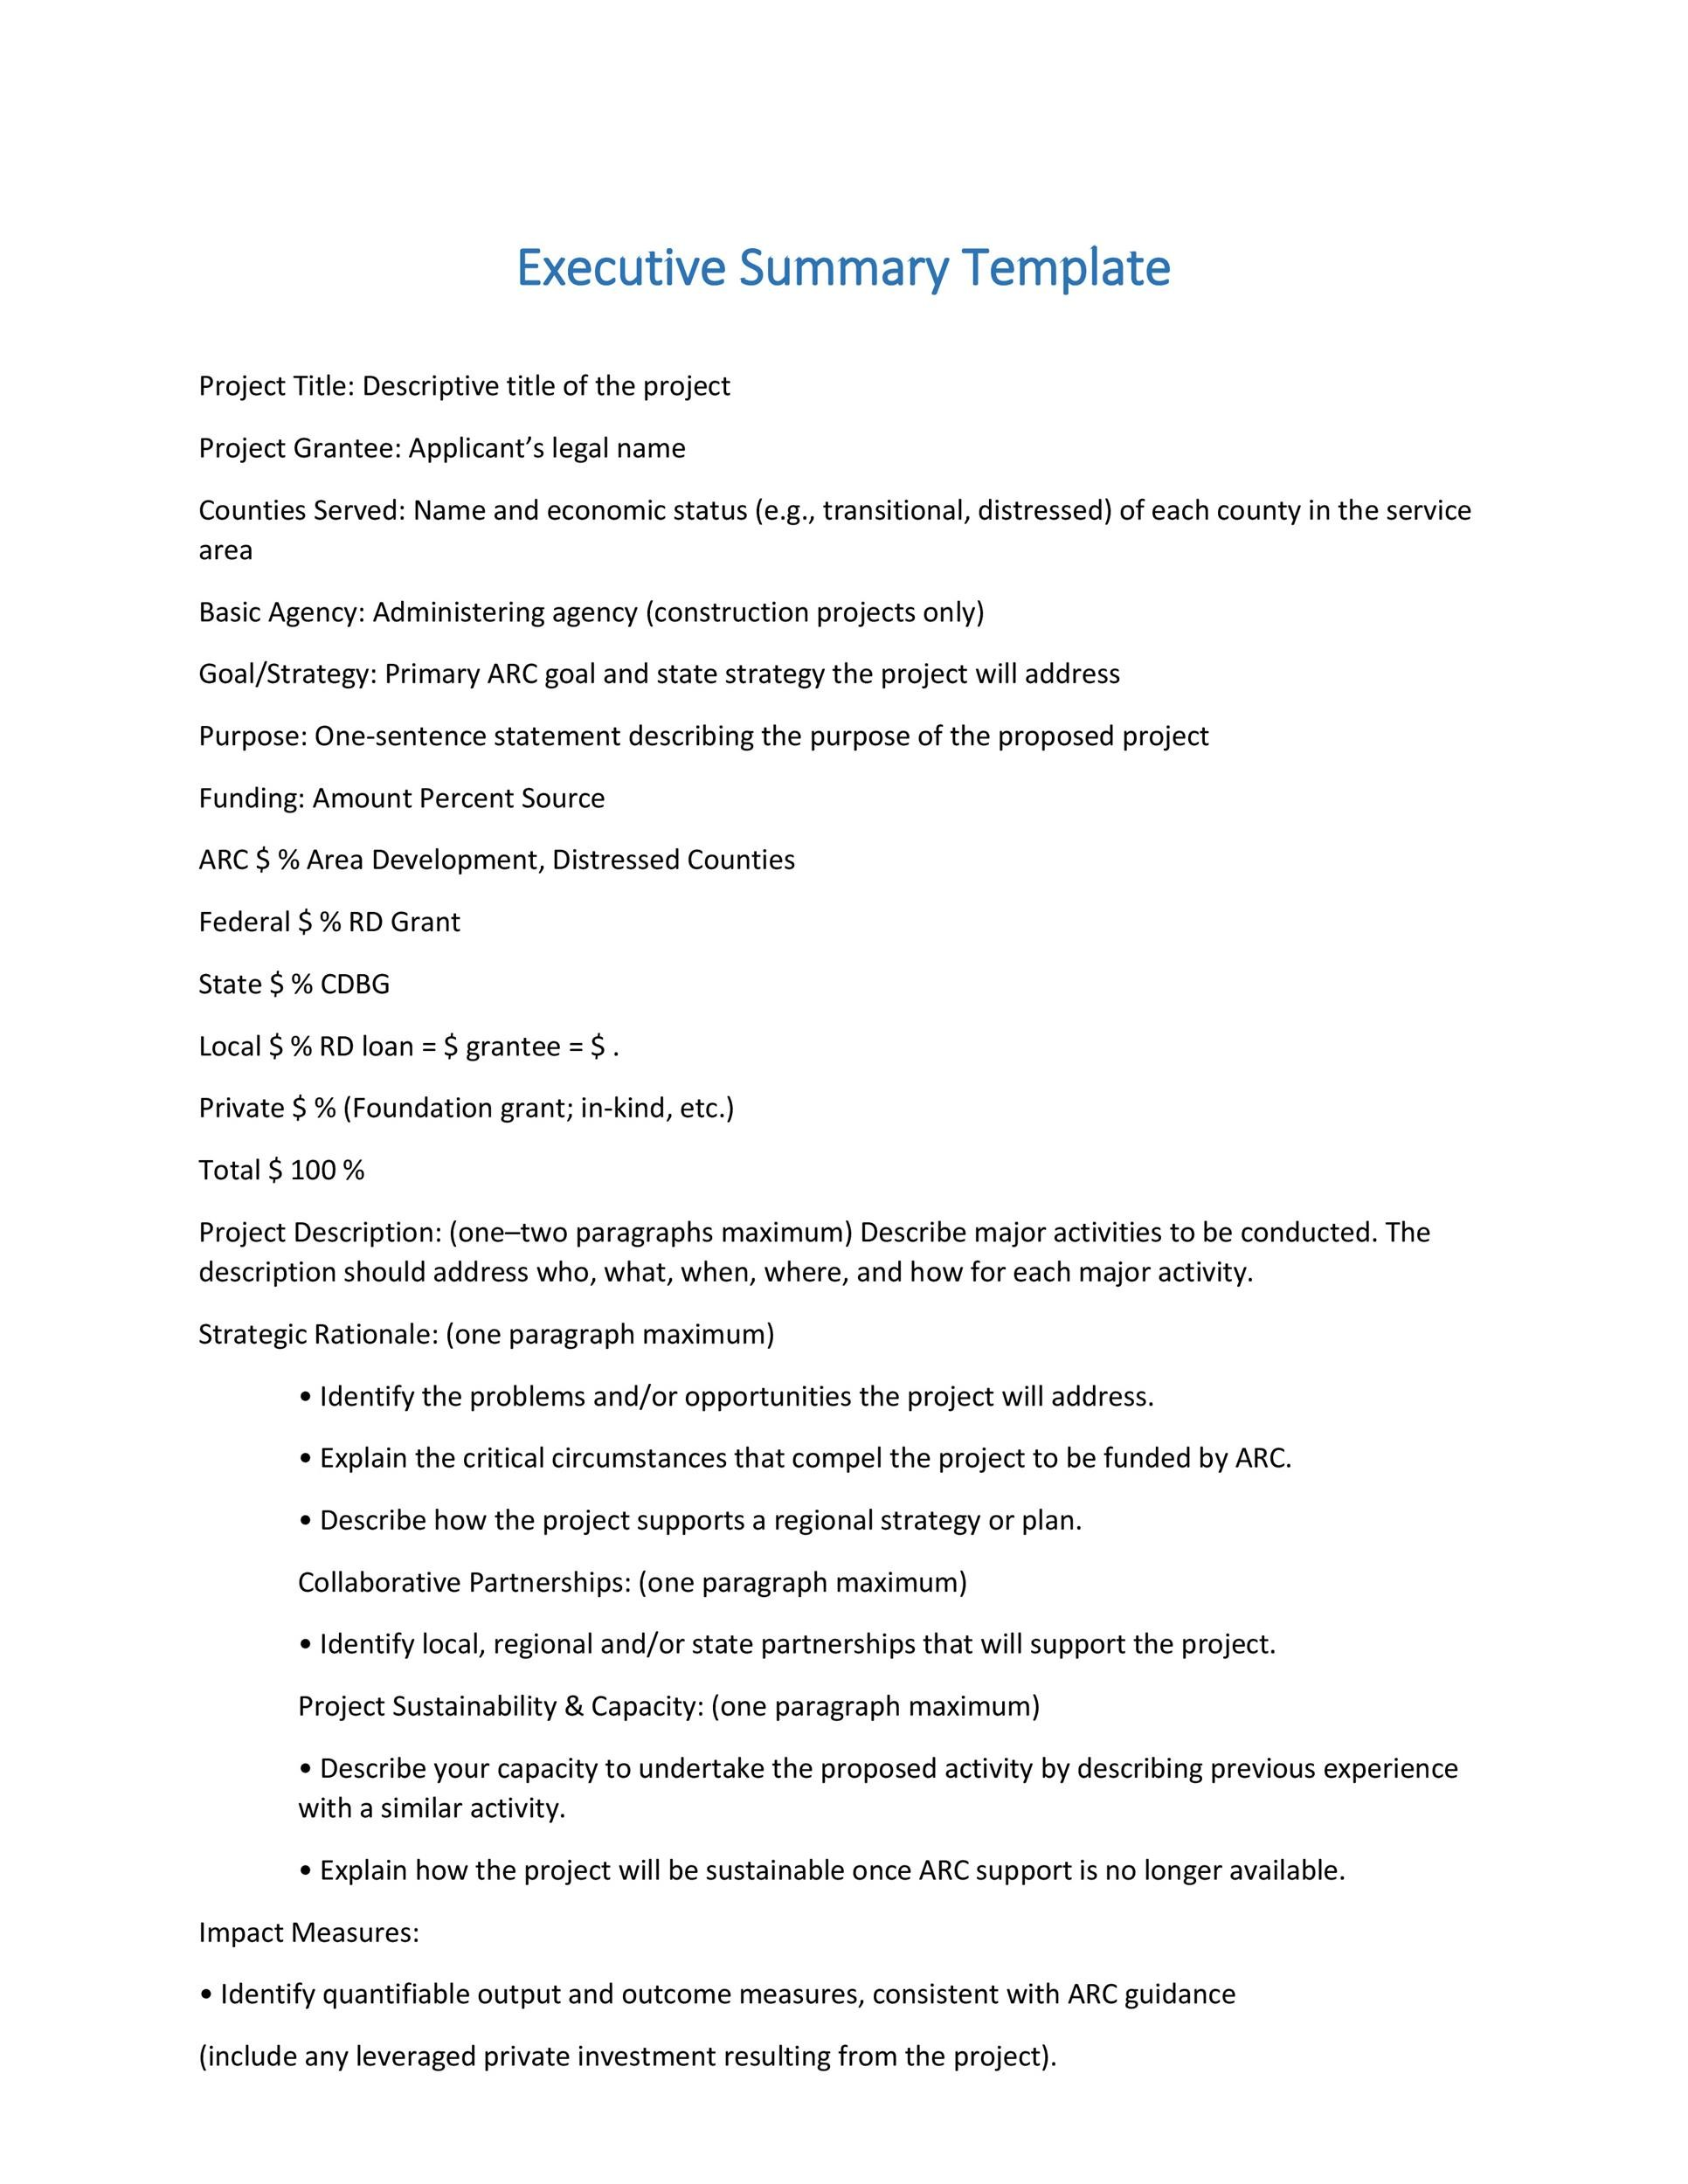 Executive Summary Template 13